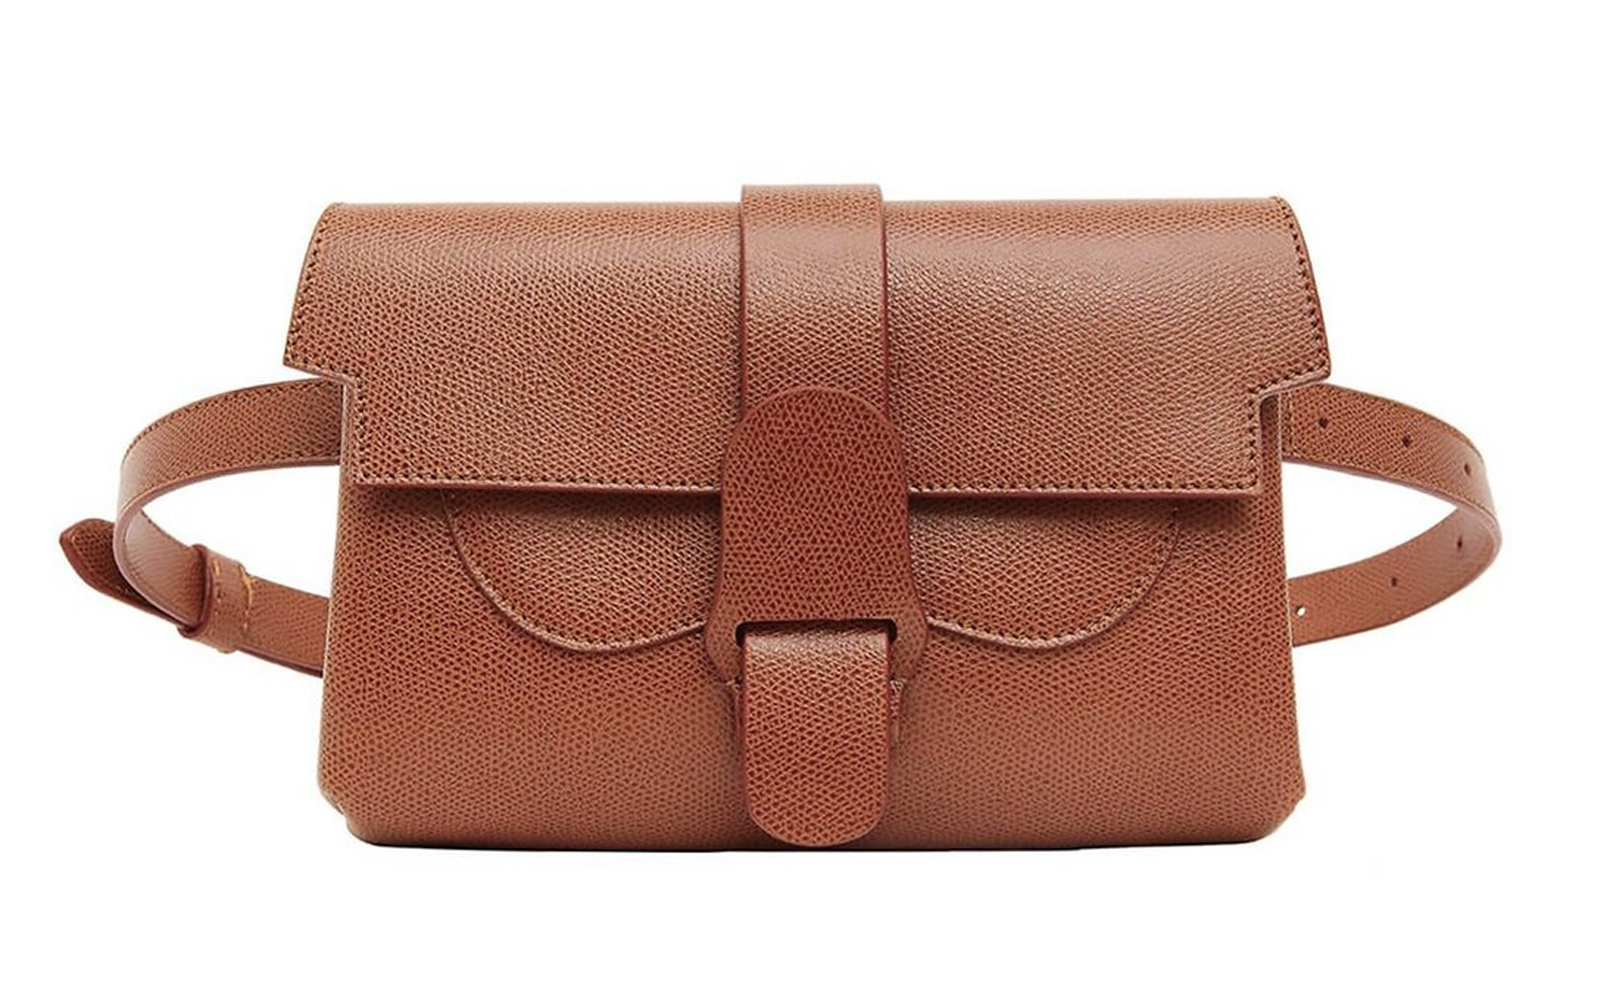 Senreve Belt Bag